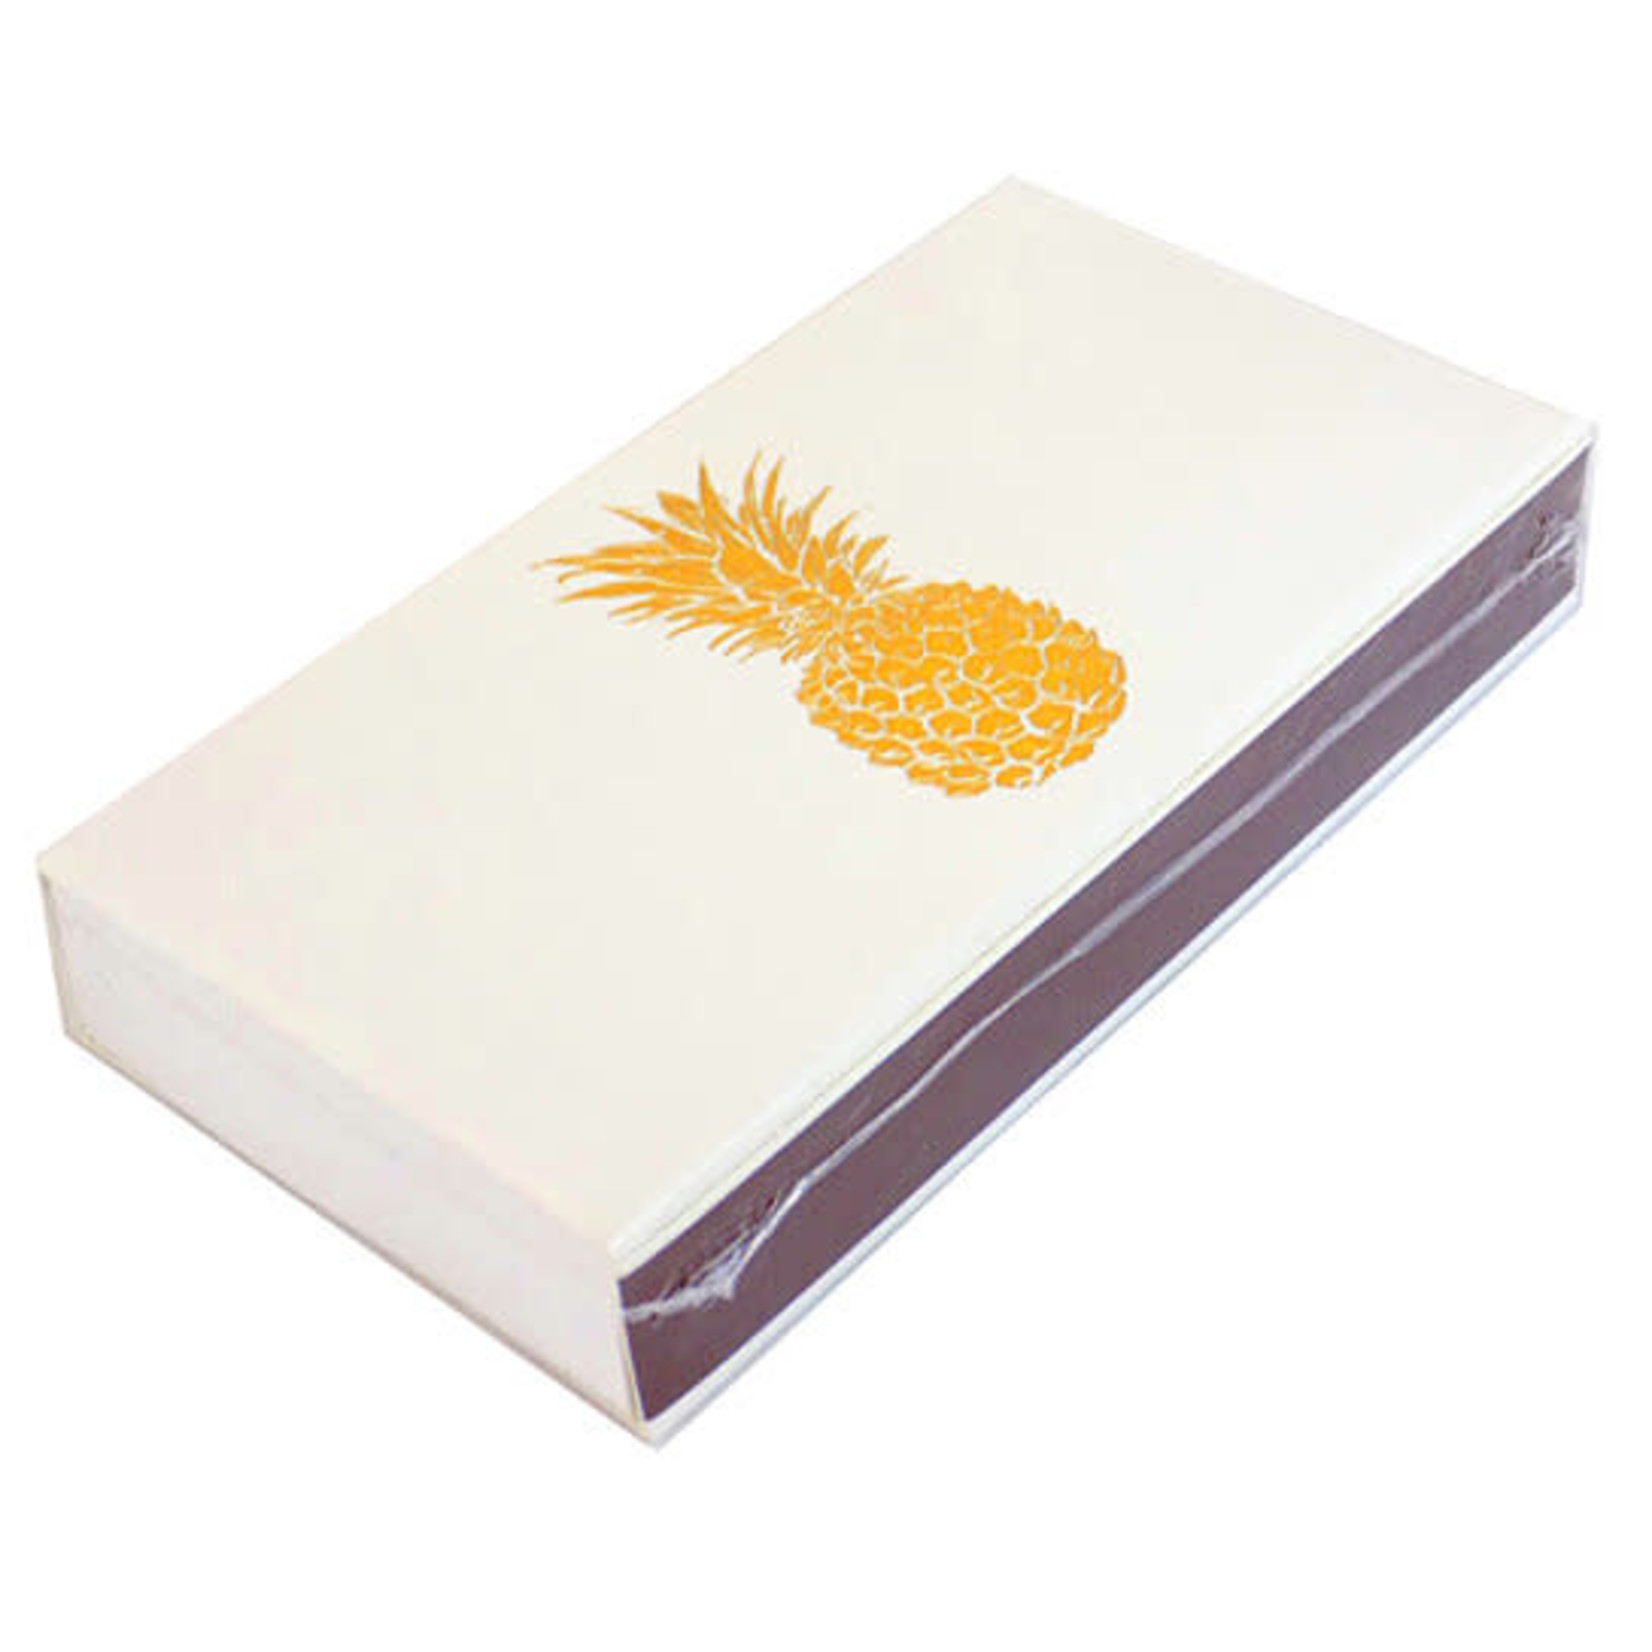 The Joy of Light Joy of Light Matchbook Pineapple White